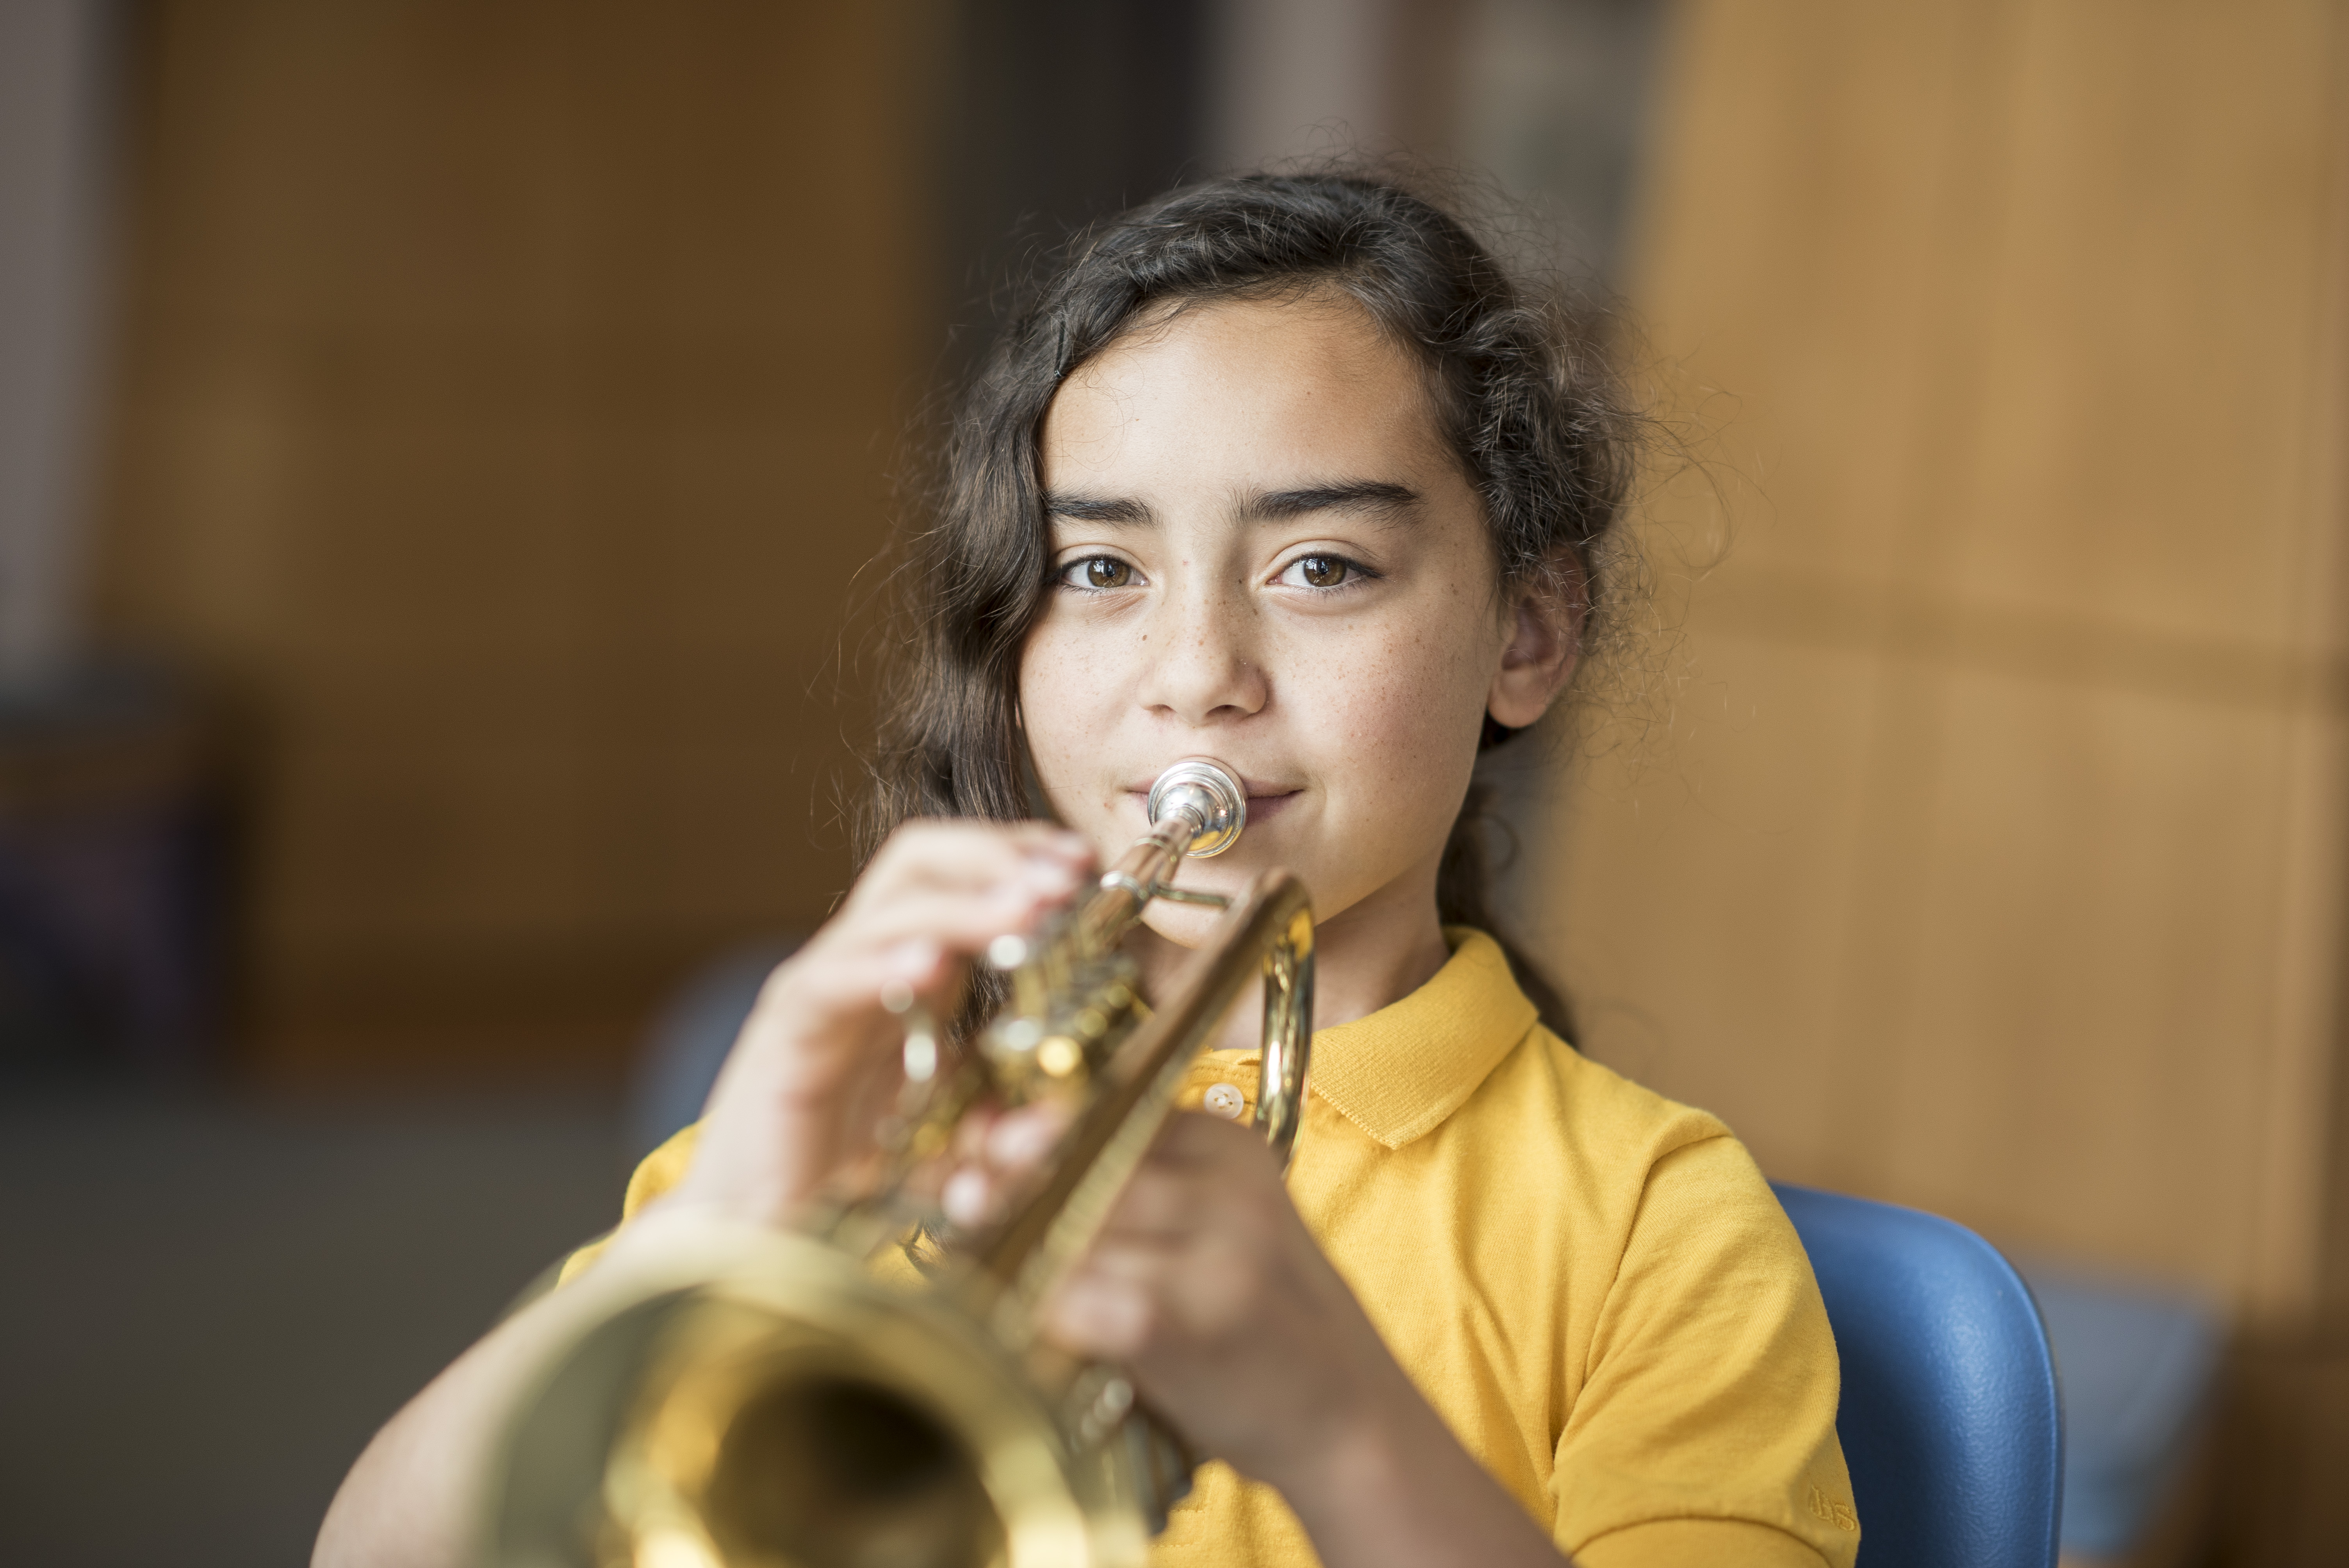 MHS elementary student learning how to play the trumpet.